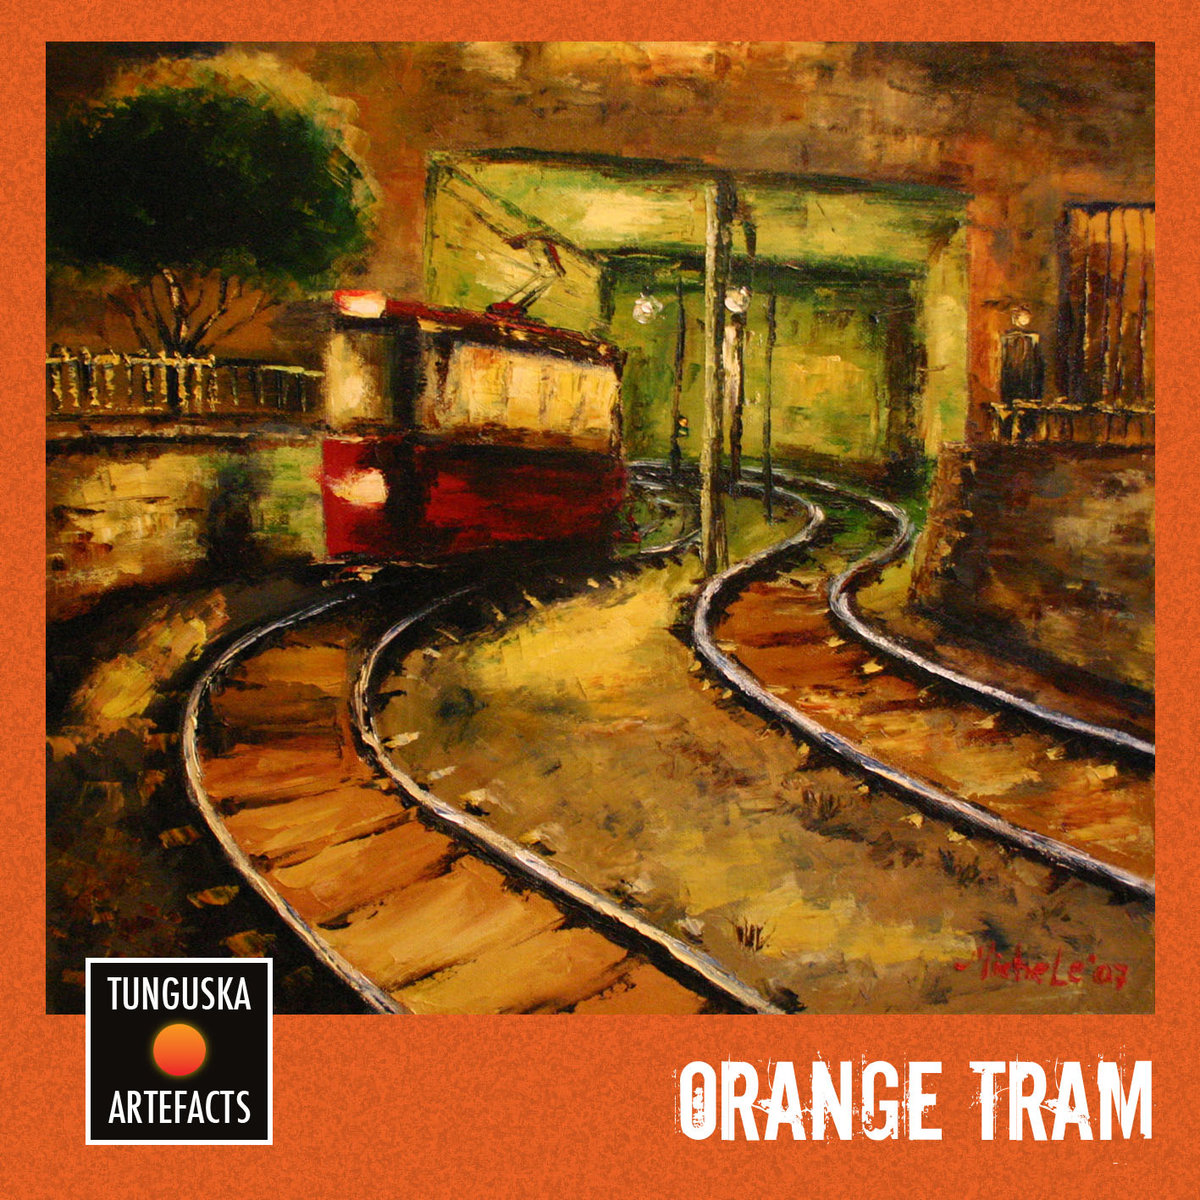 Electro-Nick - Night Drizzle @ 'Tunguska Artefacts - Orange Tram' album (electronic, ambient)